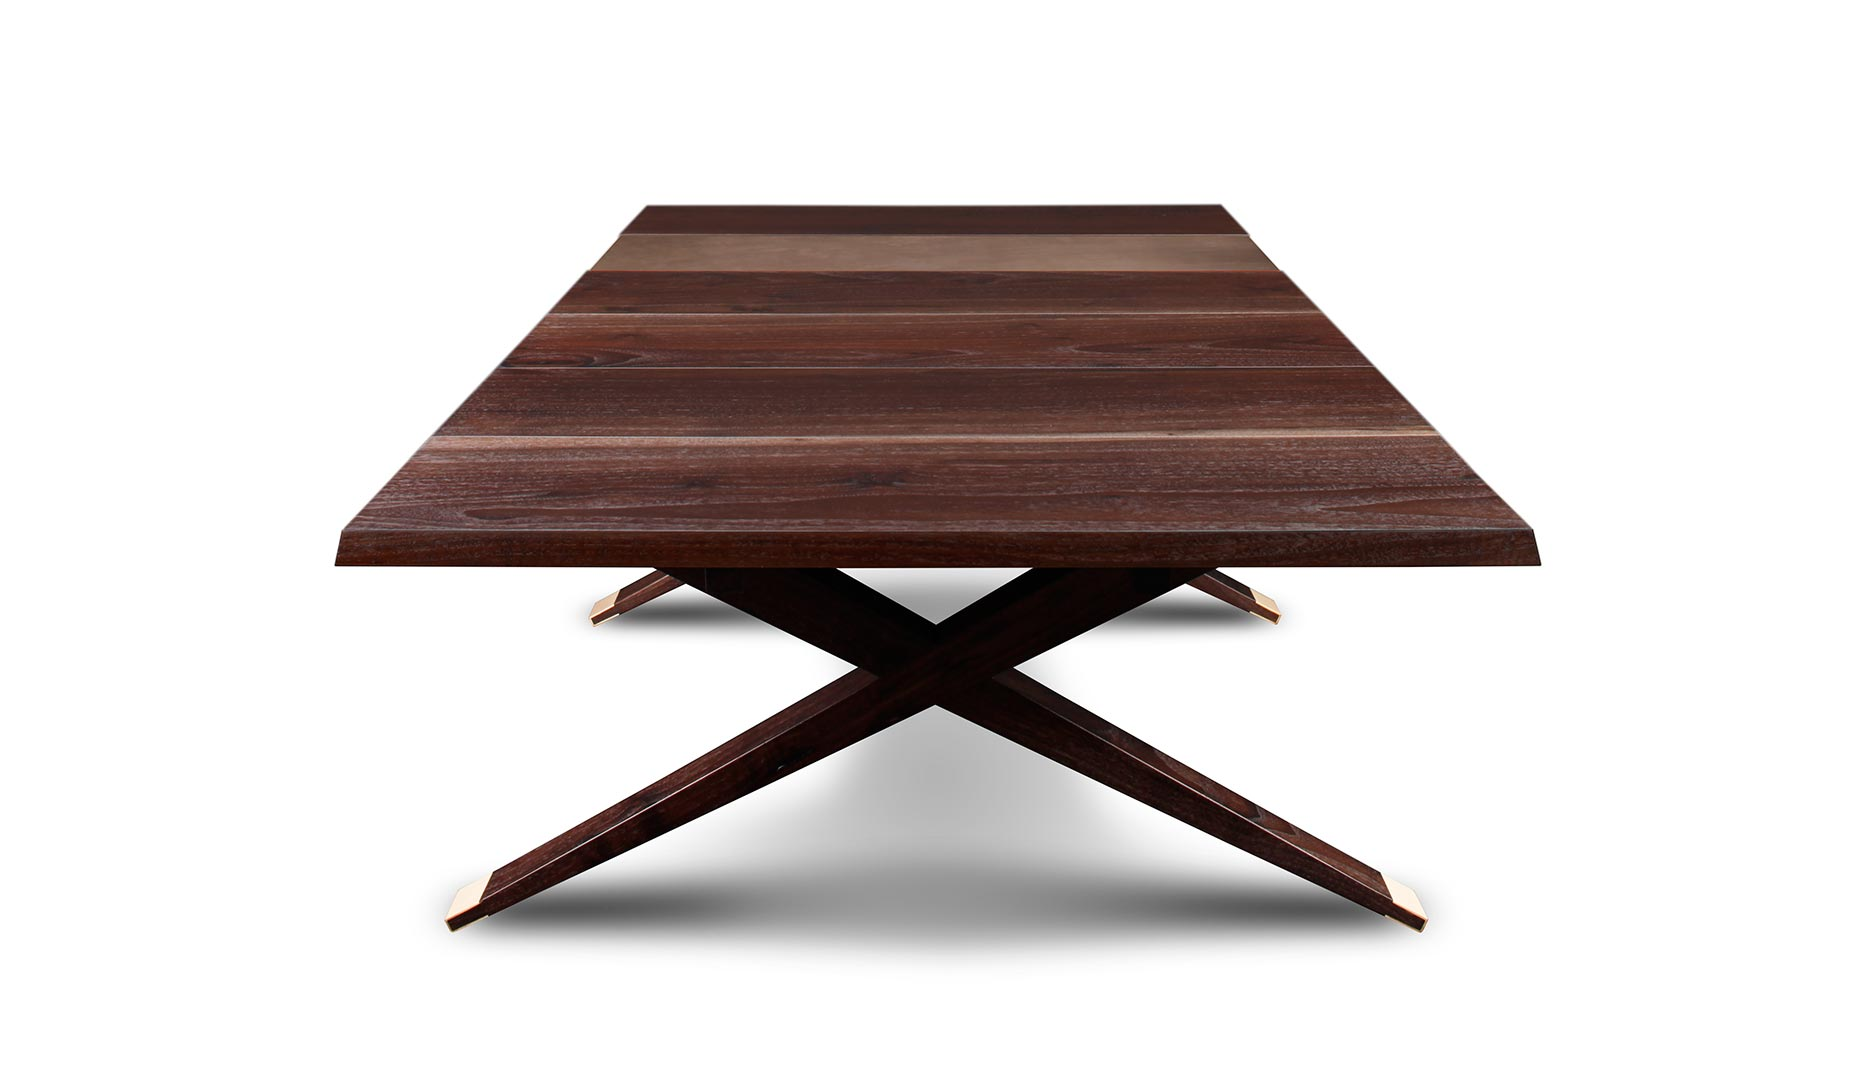 Smoked walnut and bronze table